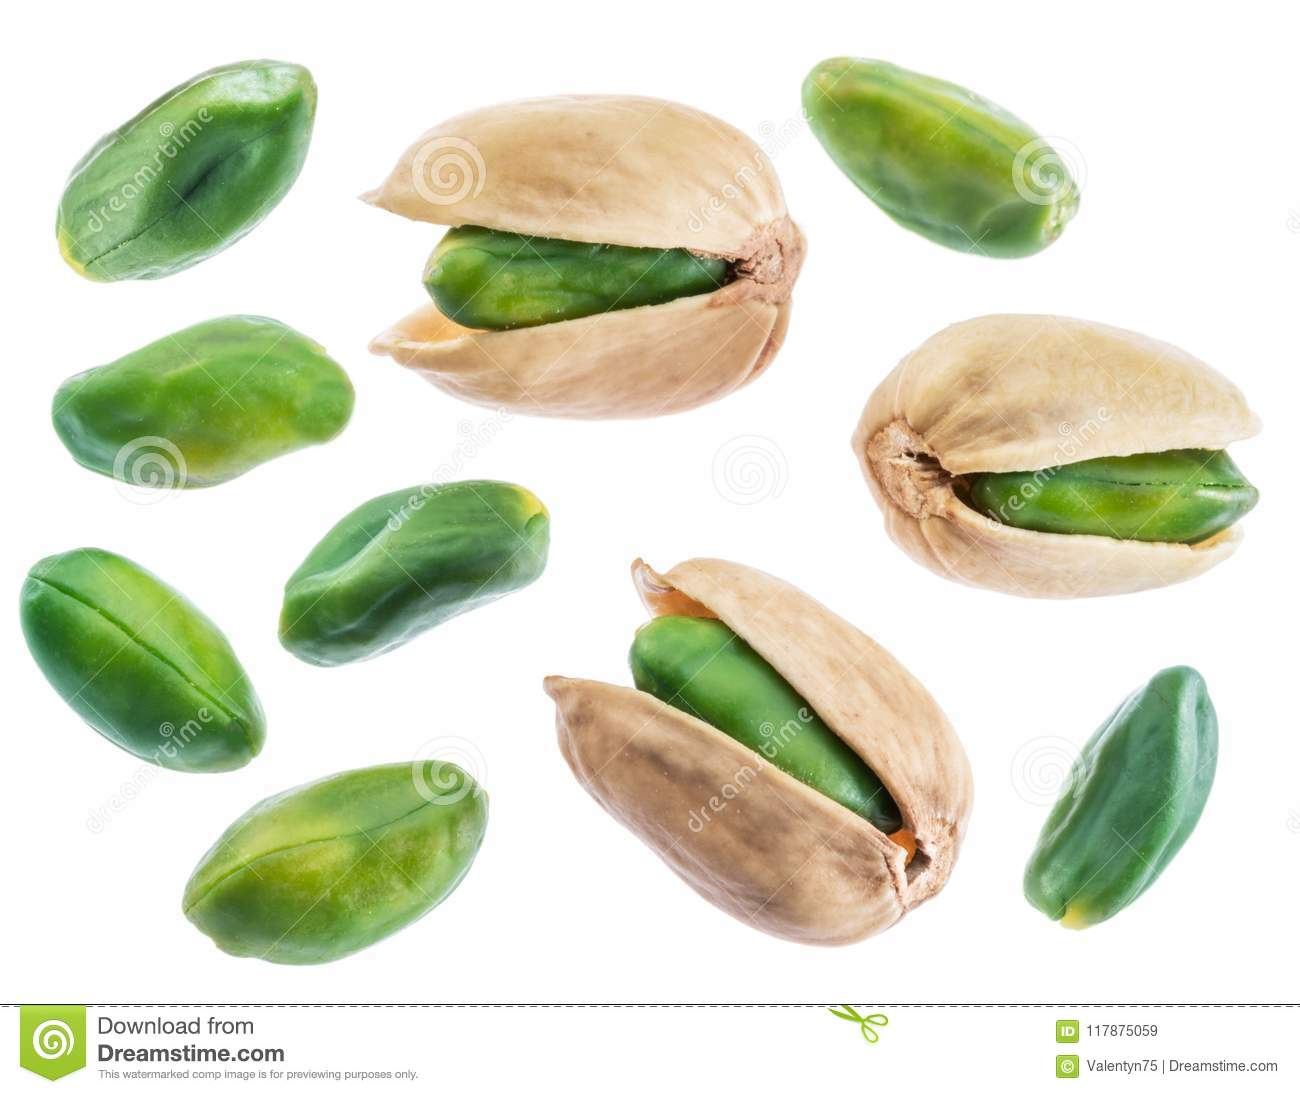 Green pistachio nuts isolated on white.